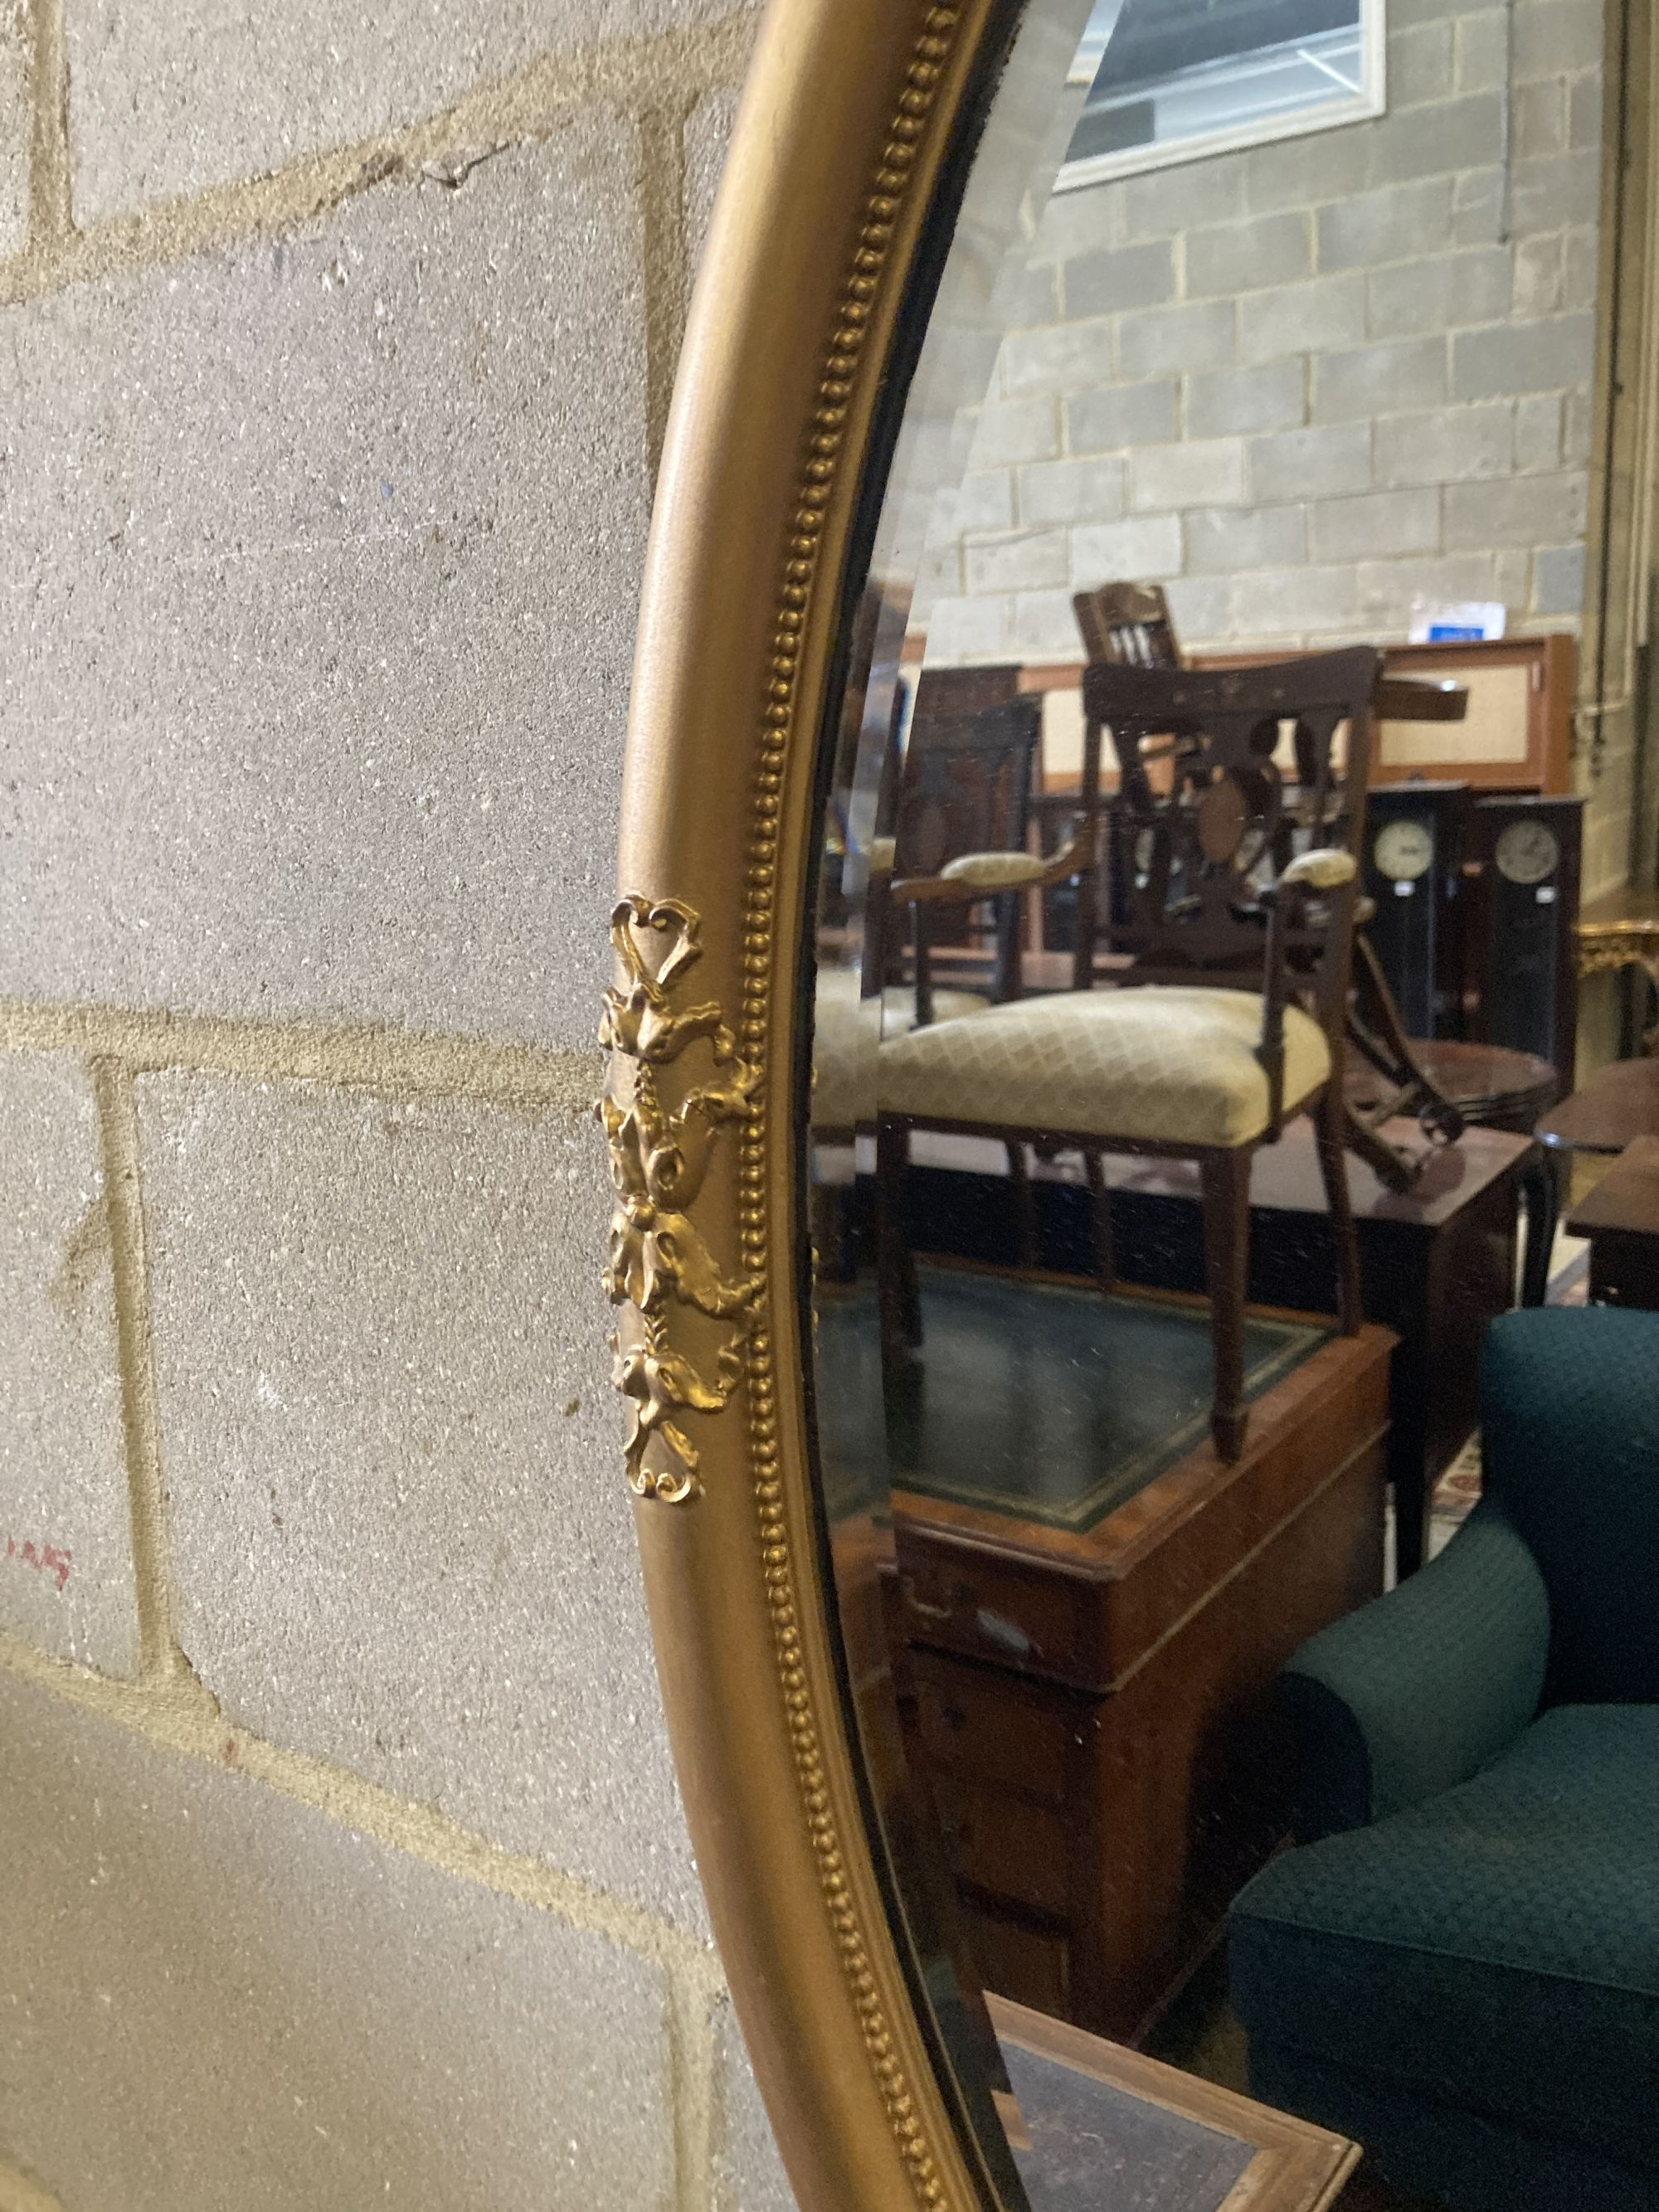 An early 20th century oval gilt framed wall mirror, width 55cm height 80cm - Image 2 of 3